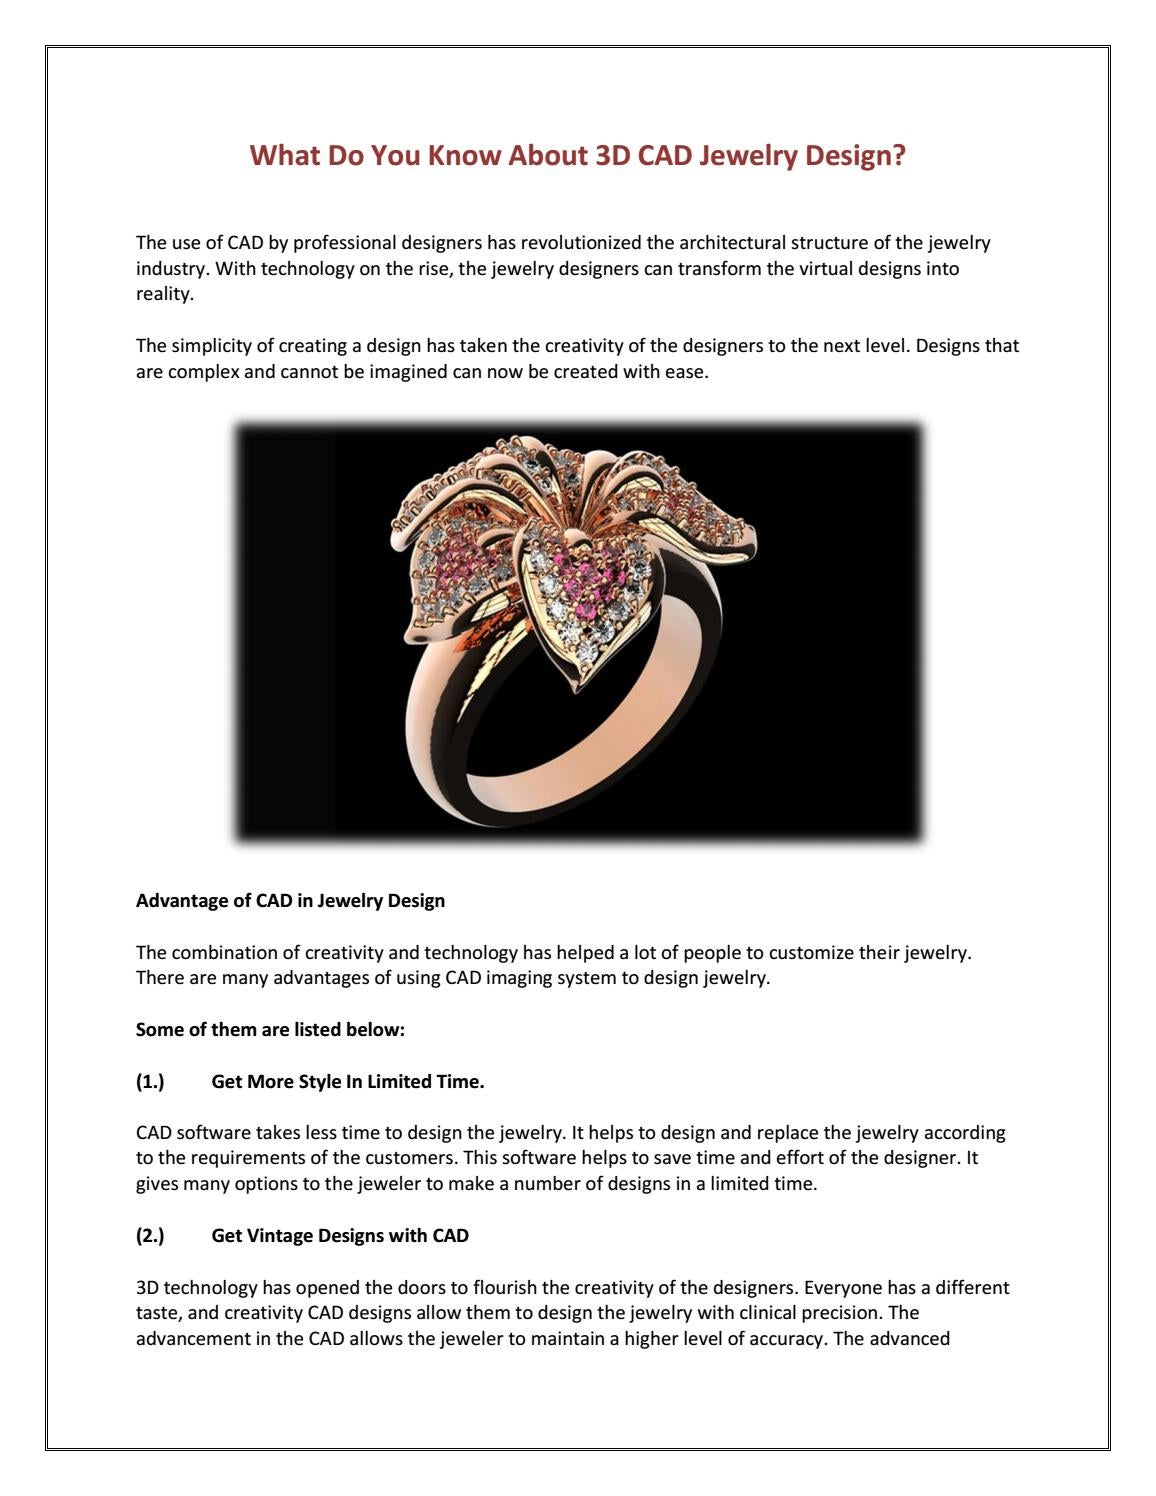 What Do You Know About 3d Cad Jewelry Design By 3d Custom Jewel Issuu